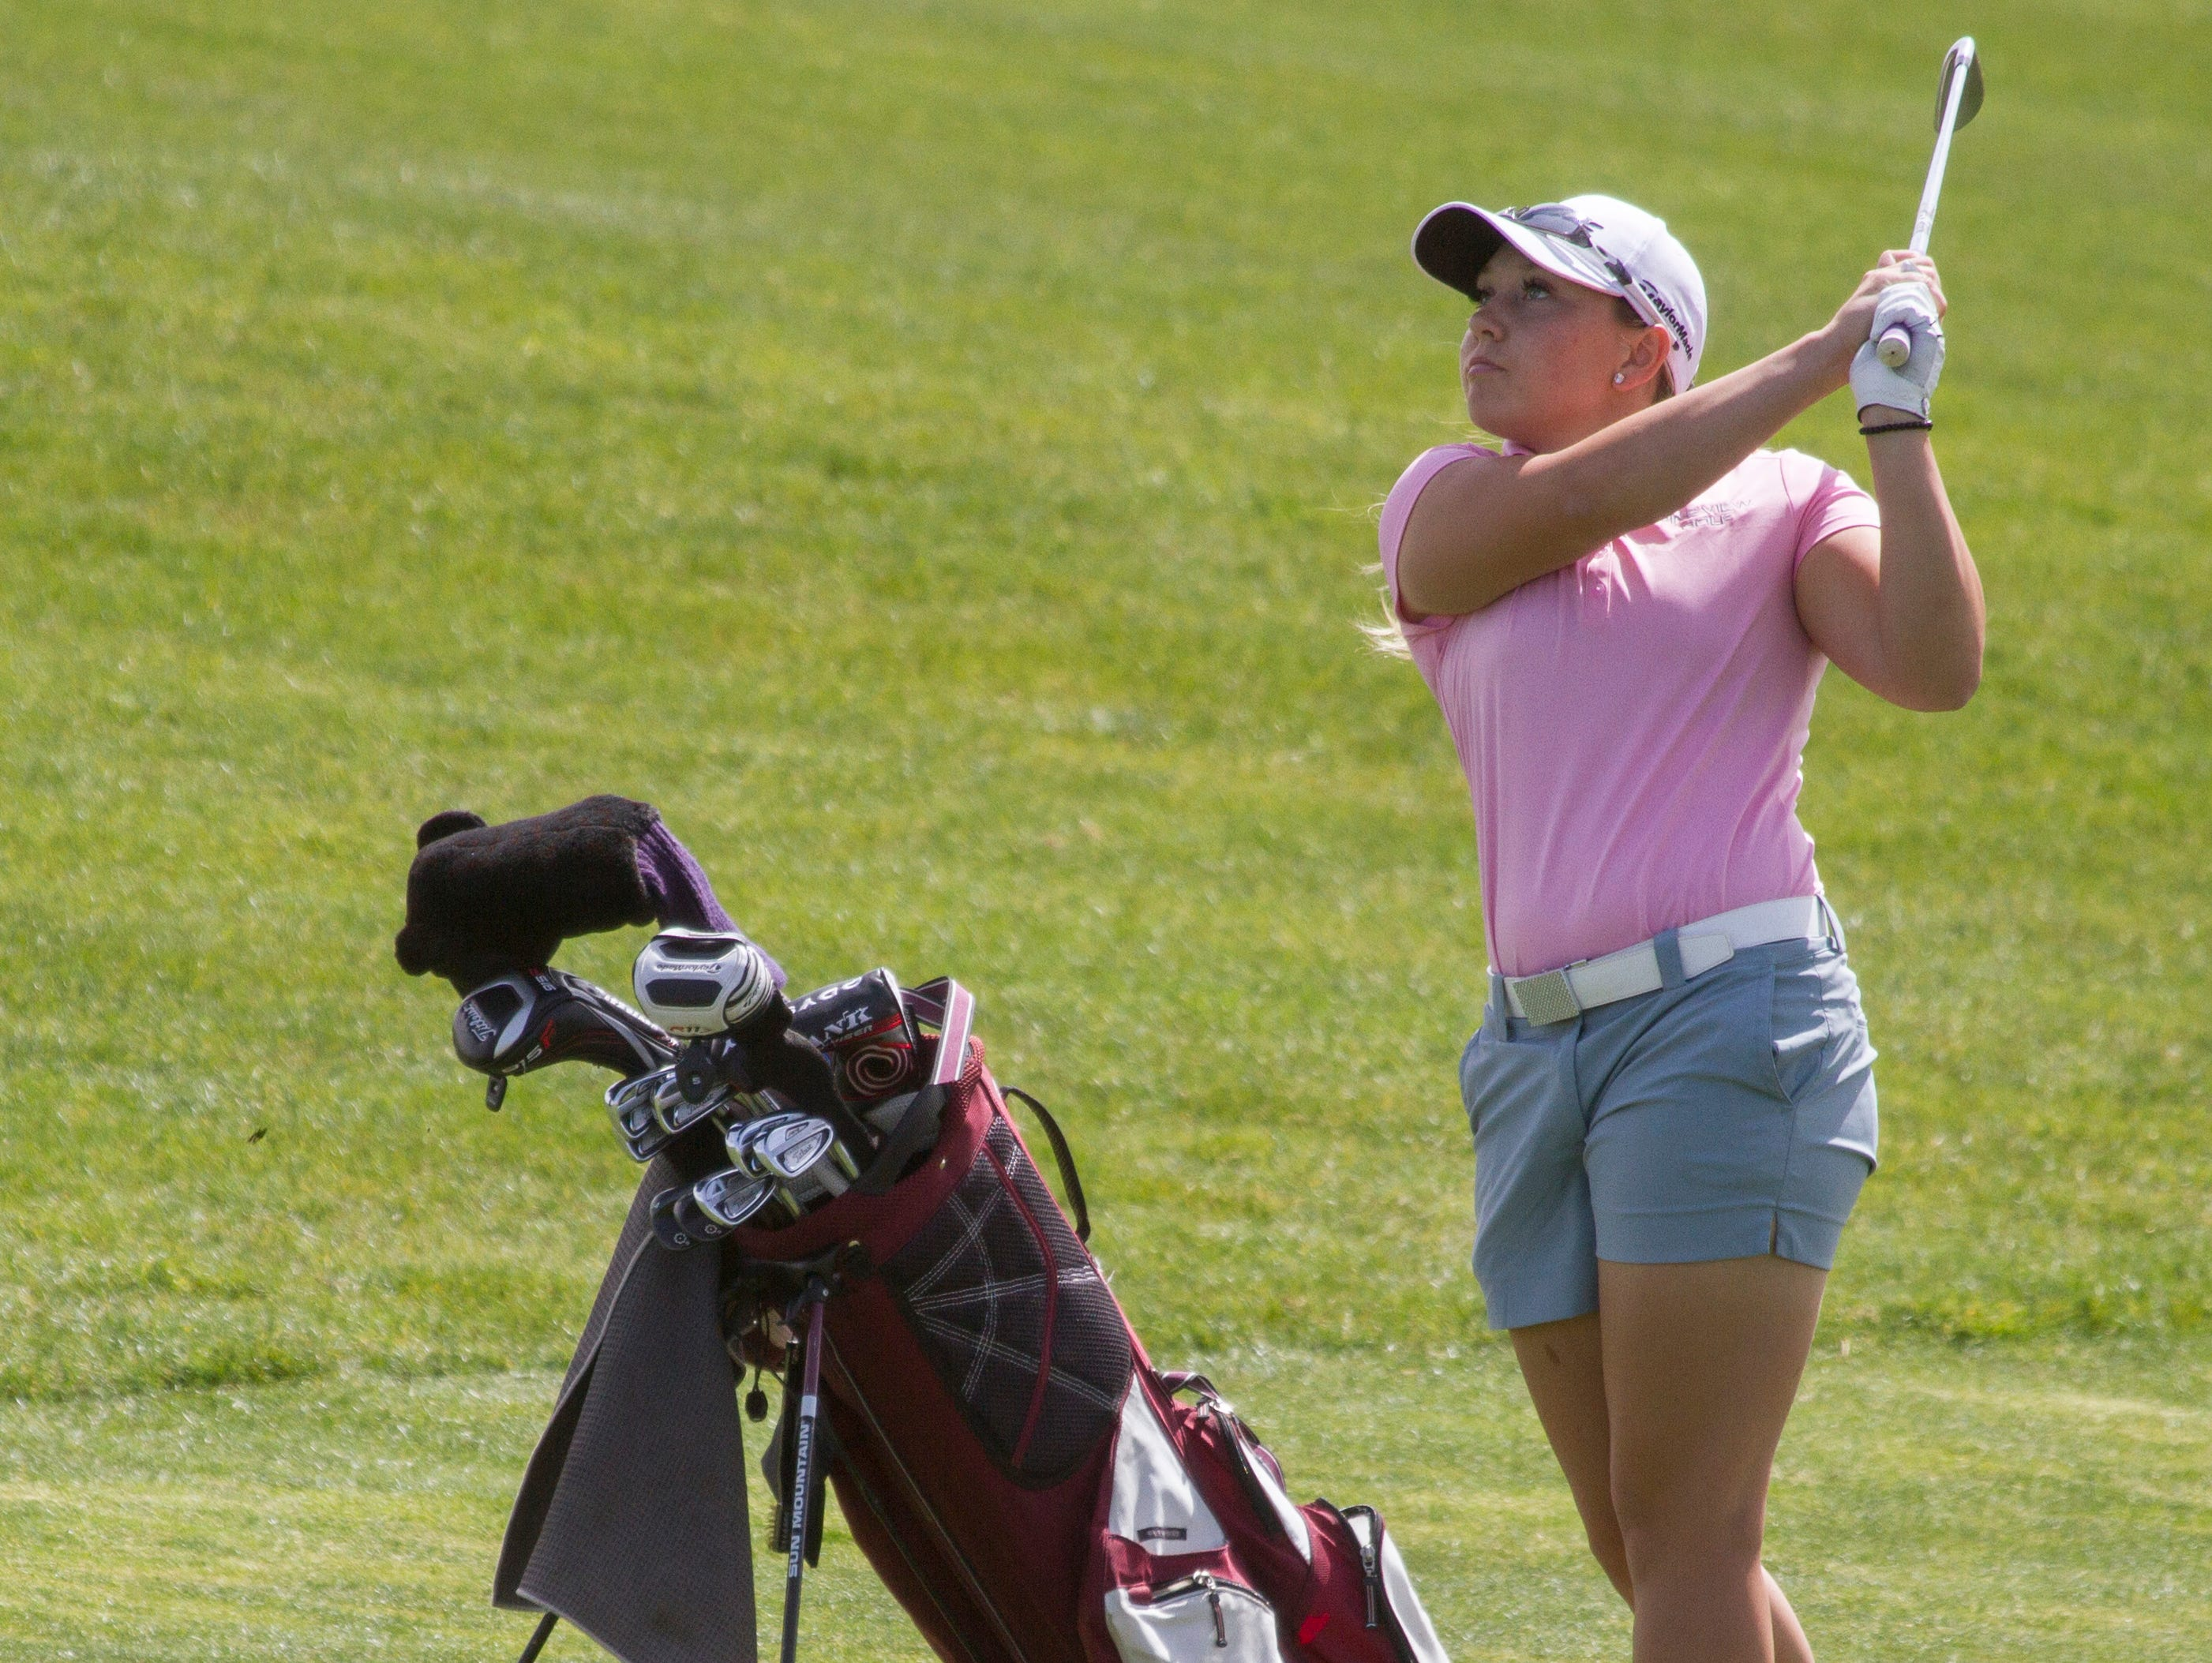 Pine View's Taylor Bandley had two birdies on the day to lead the Panthers to a thrilling upset victory over Desert Hills Wednesday afternoon at The Ledges Golf Club.